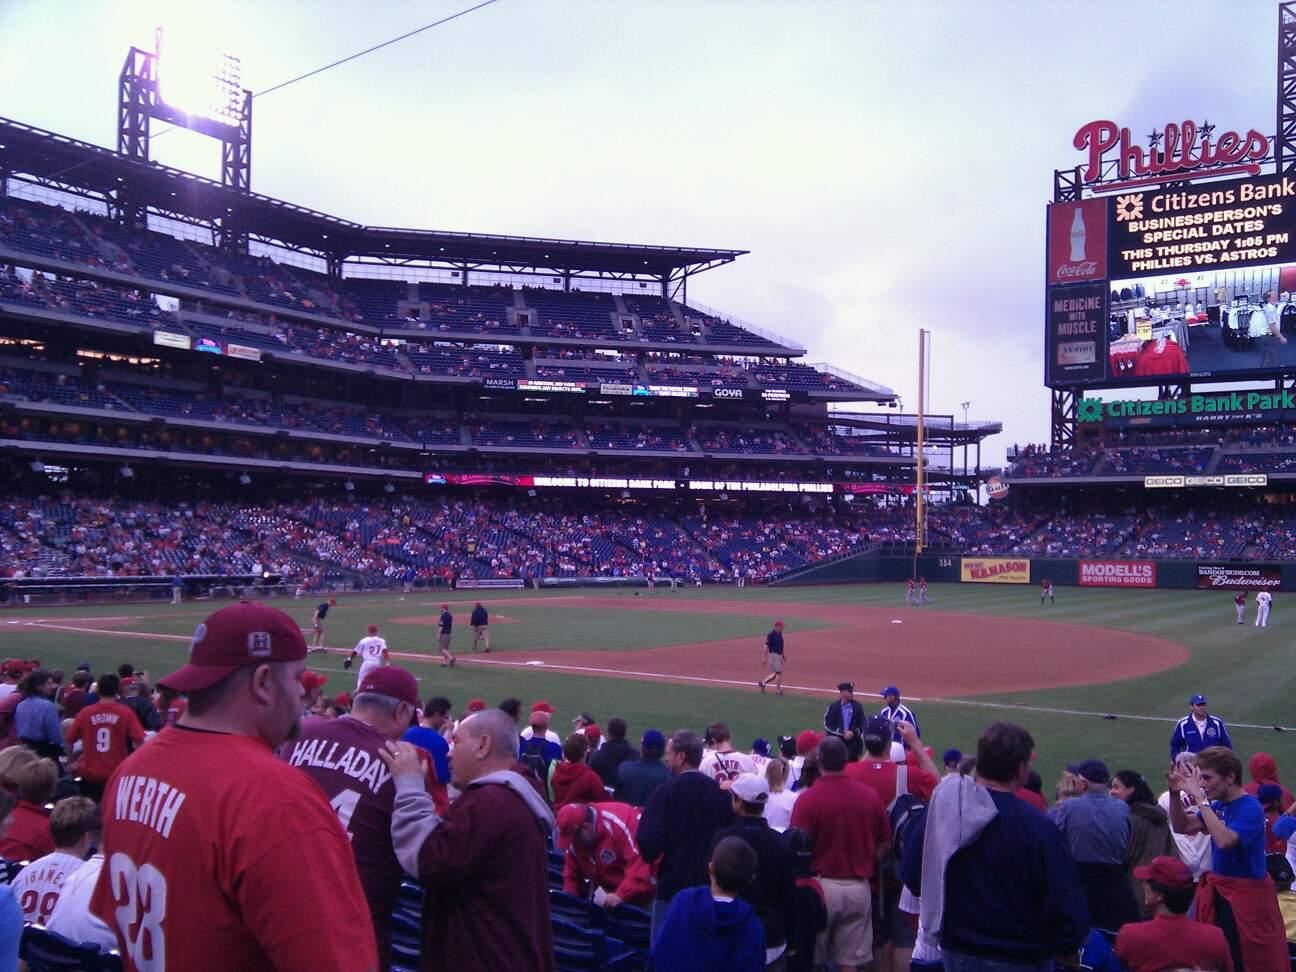 Citizens Bank Park Section 113 Row 15 Seat 13